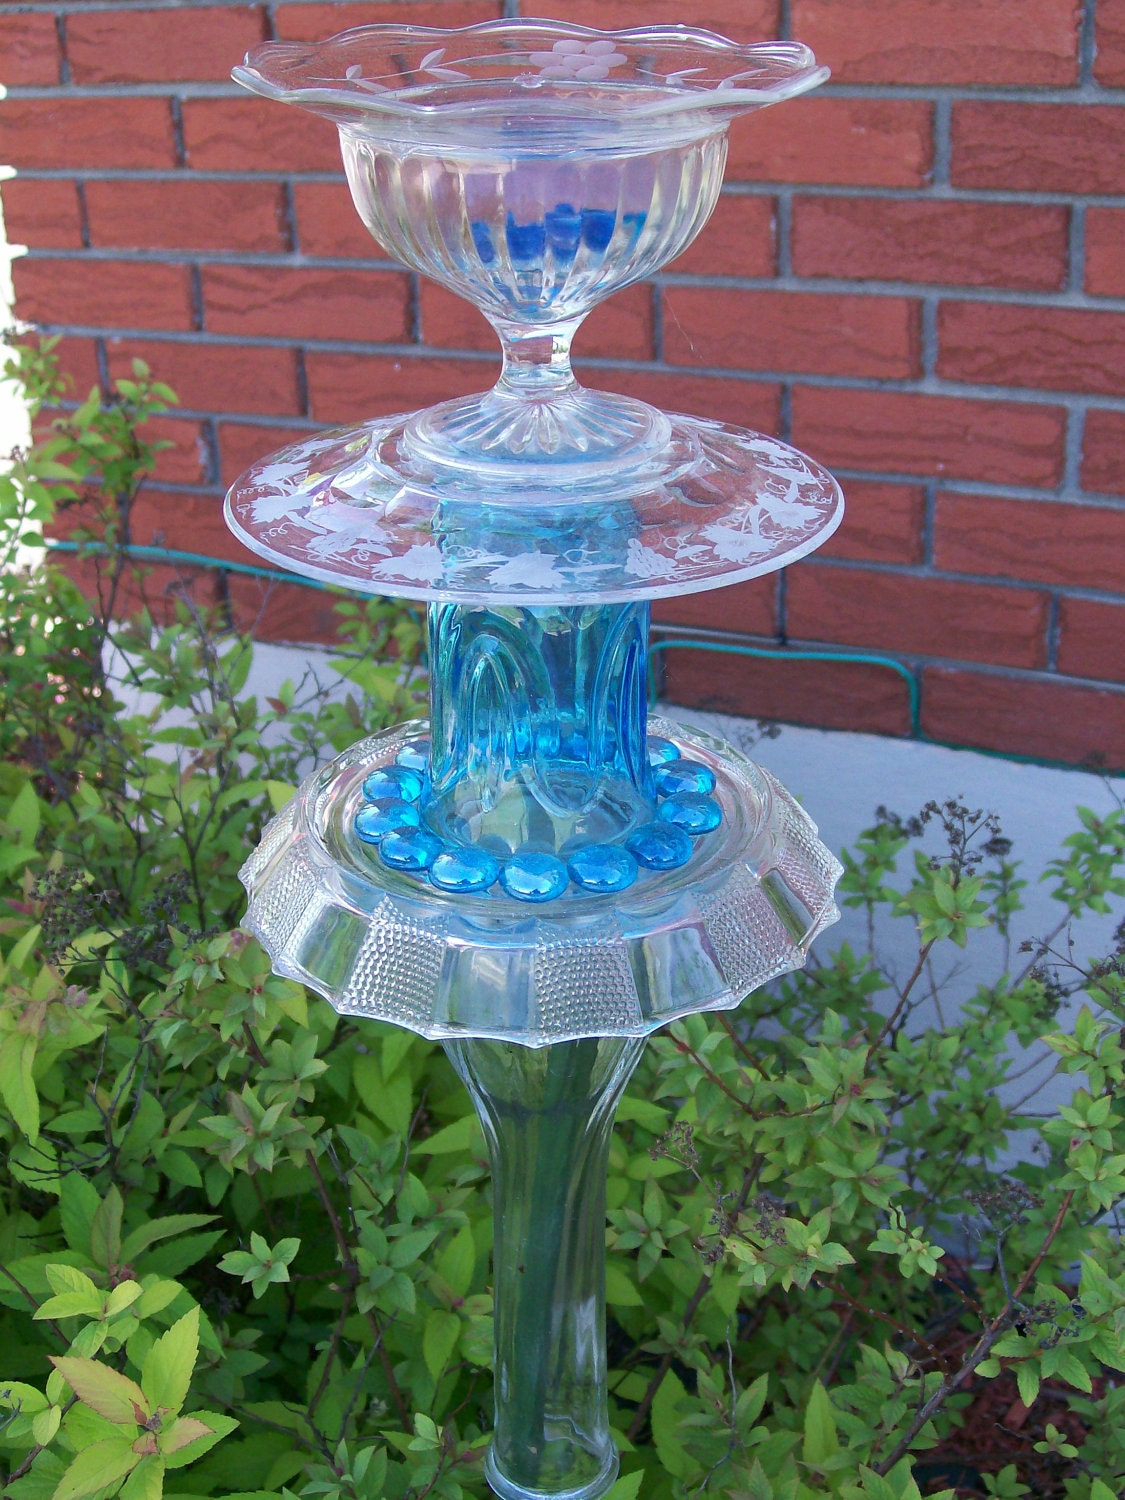 Recycled glass garden sculpture candle holder bird by - Recycled glass garden art ...